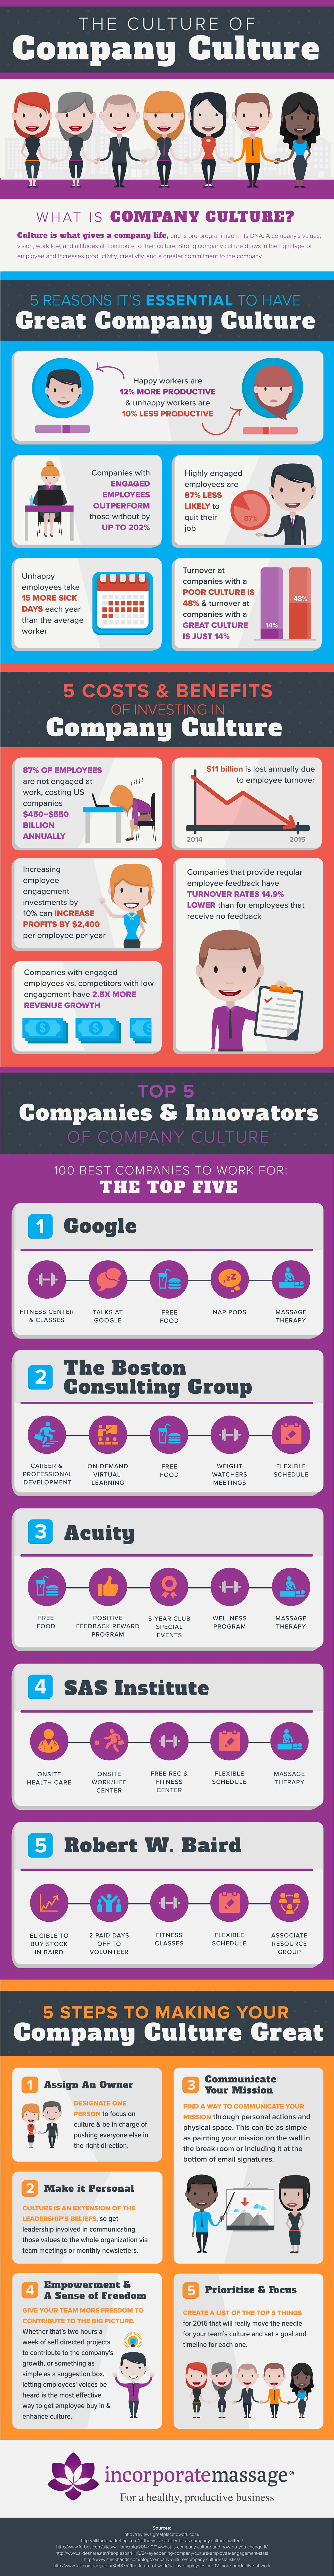 The Culture of Company Culture